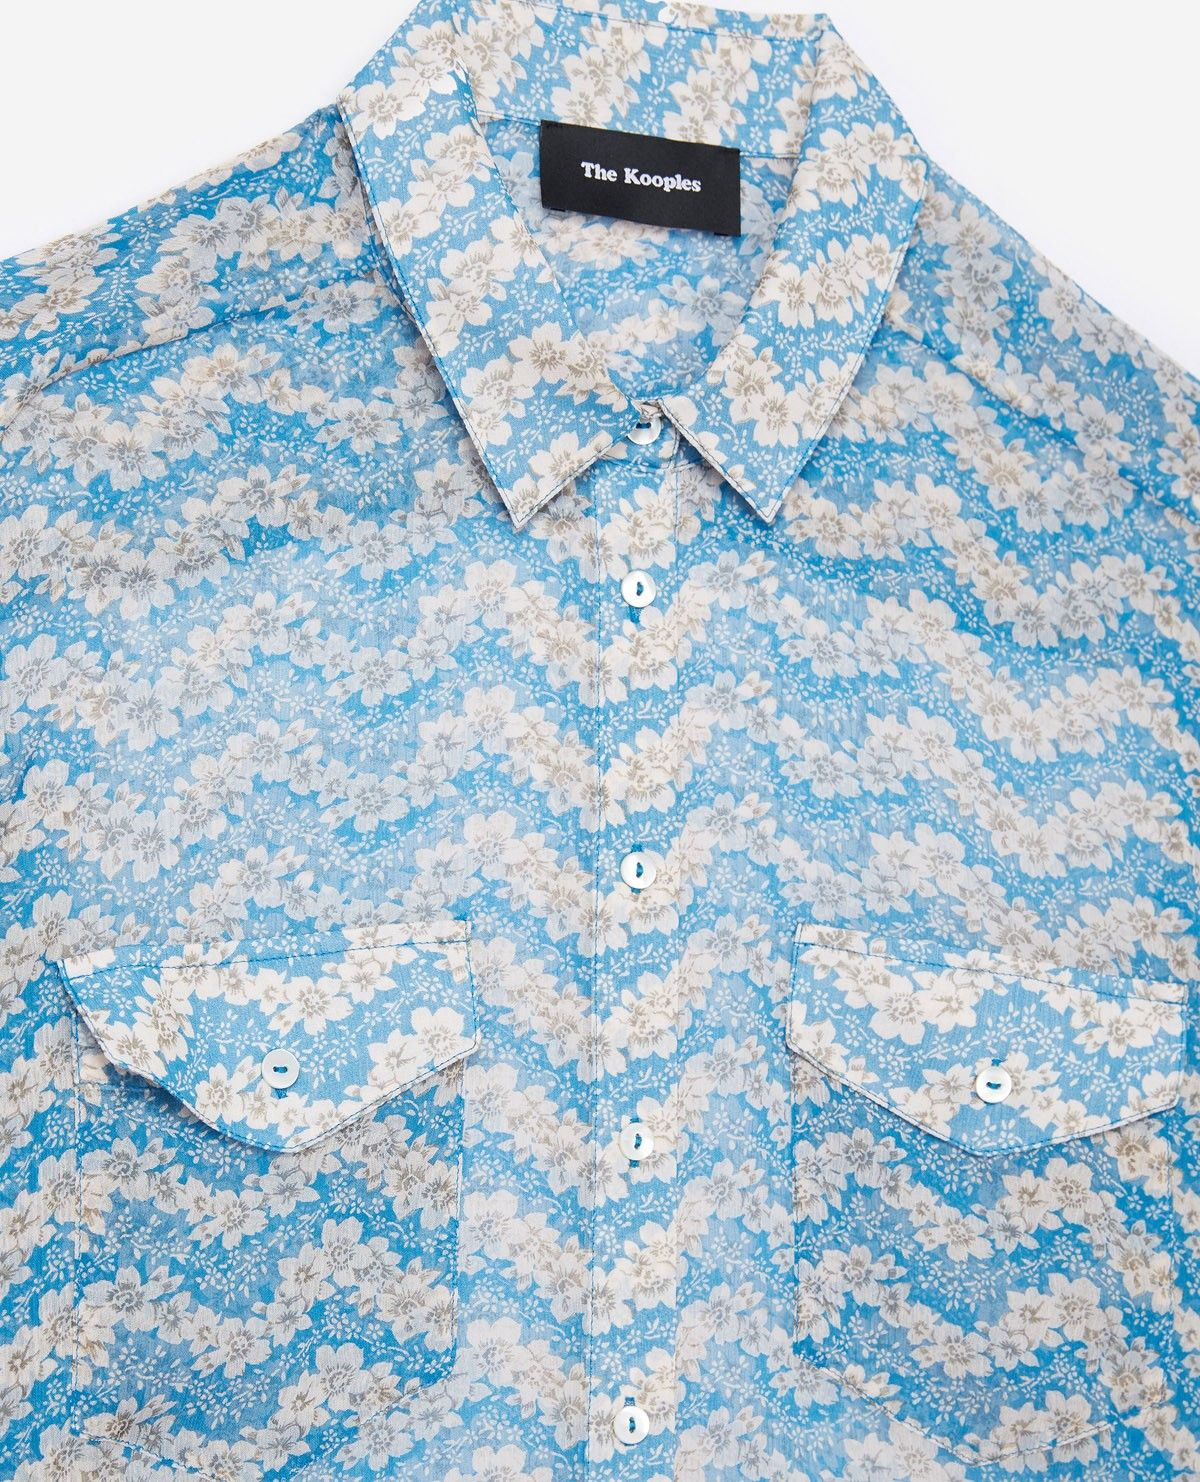 c042802de0a Blue Jasmine printed silk shirt - THE KOOPLES | Clothes by Category ...